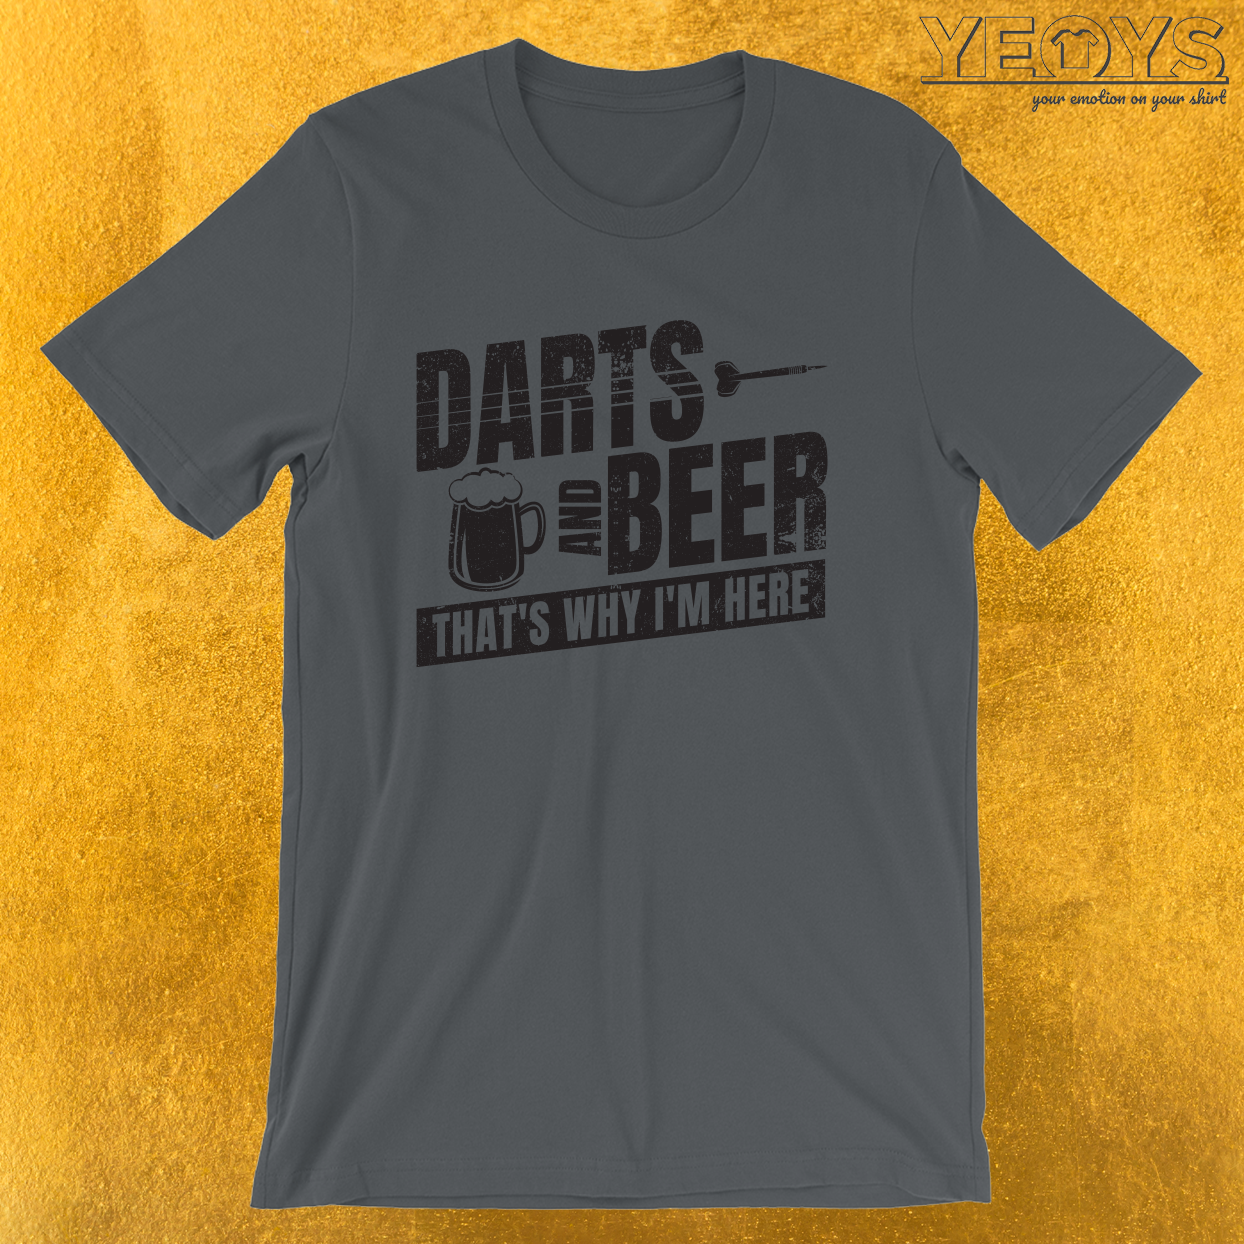 Darts And Beer That's Why I'm Here – Darts & Beer Tee